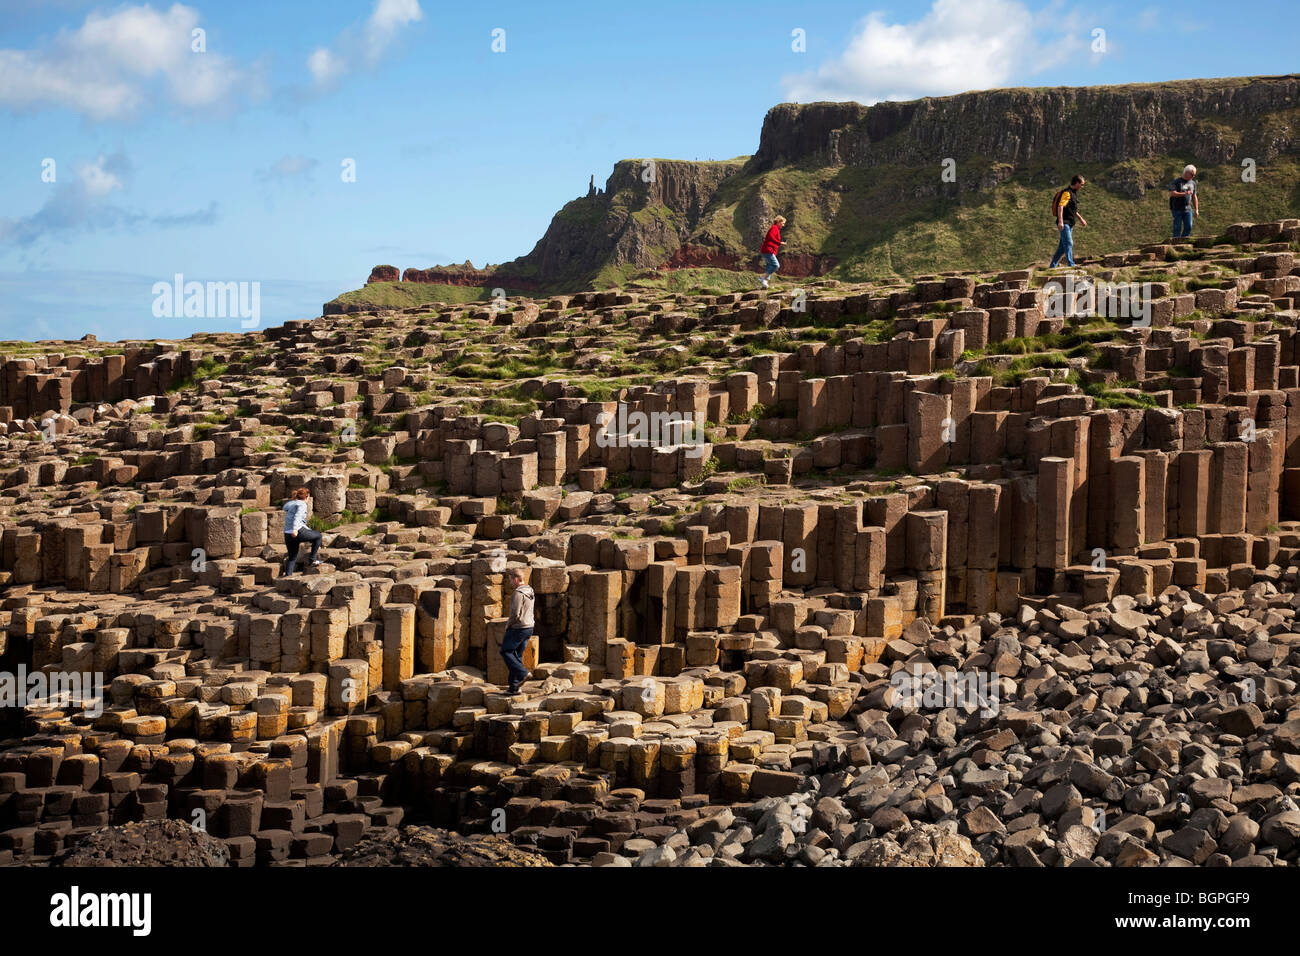 Giant's Causeway Antrim Northern Ireland a natural phenomena and a world heritage site. - Stock Image